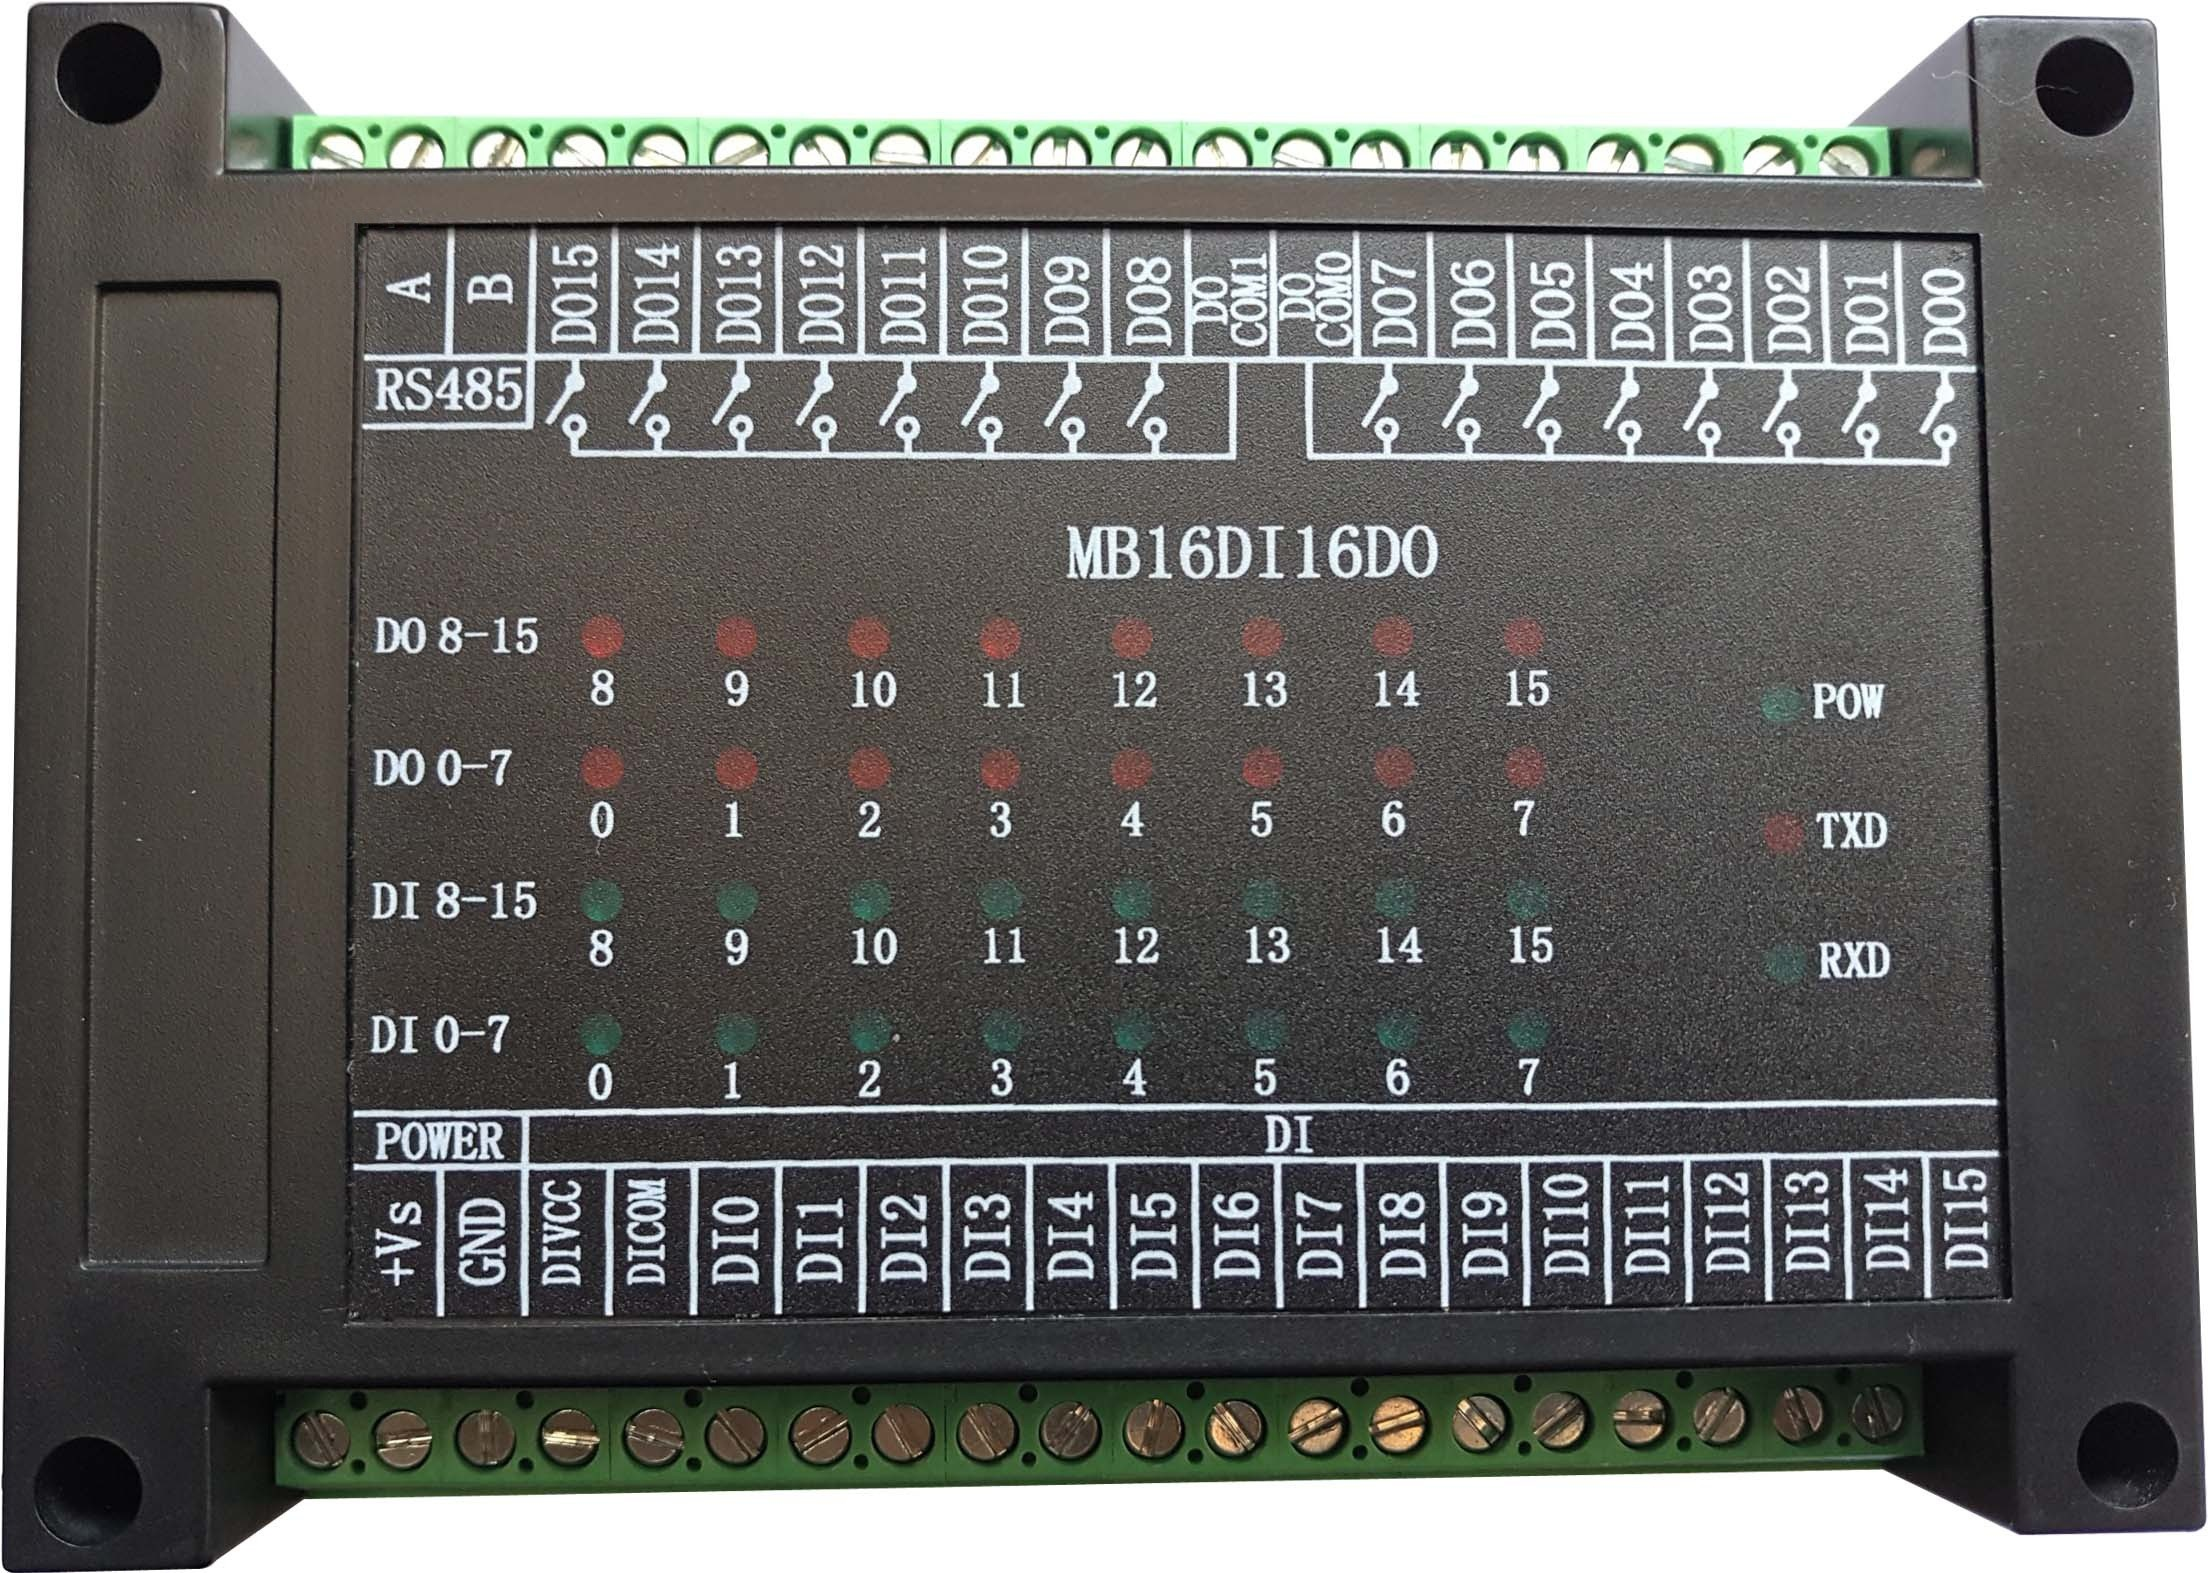 Switch Input And Output 16-Channel Open-in 16-Channel Relay Output Module RS485 MODBUS-RTU Communication